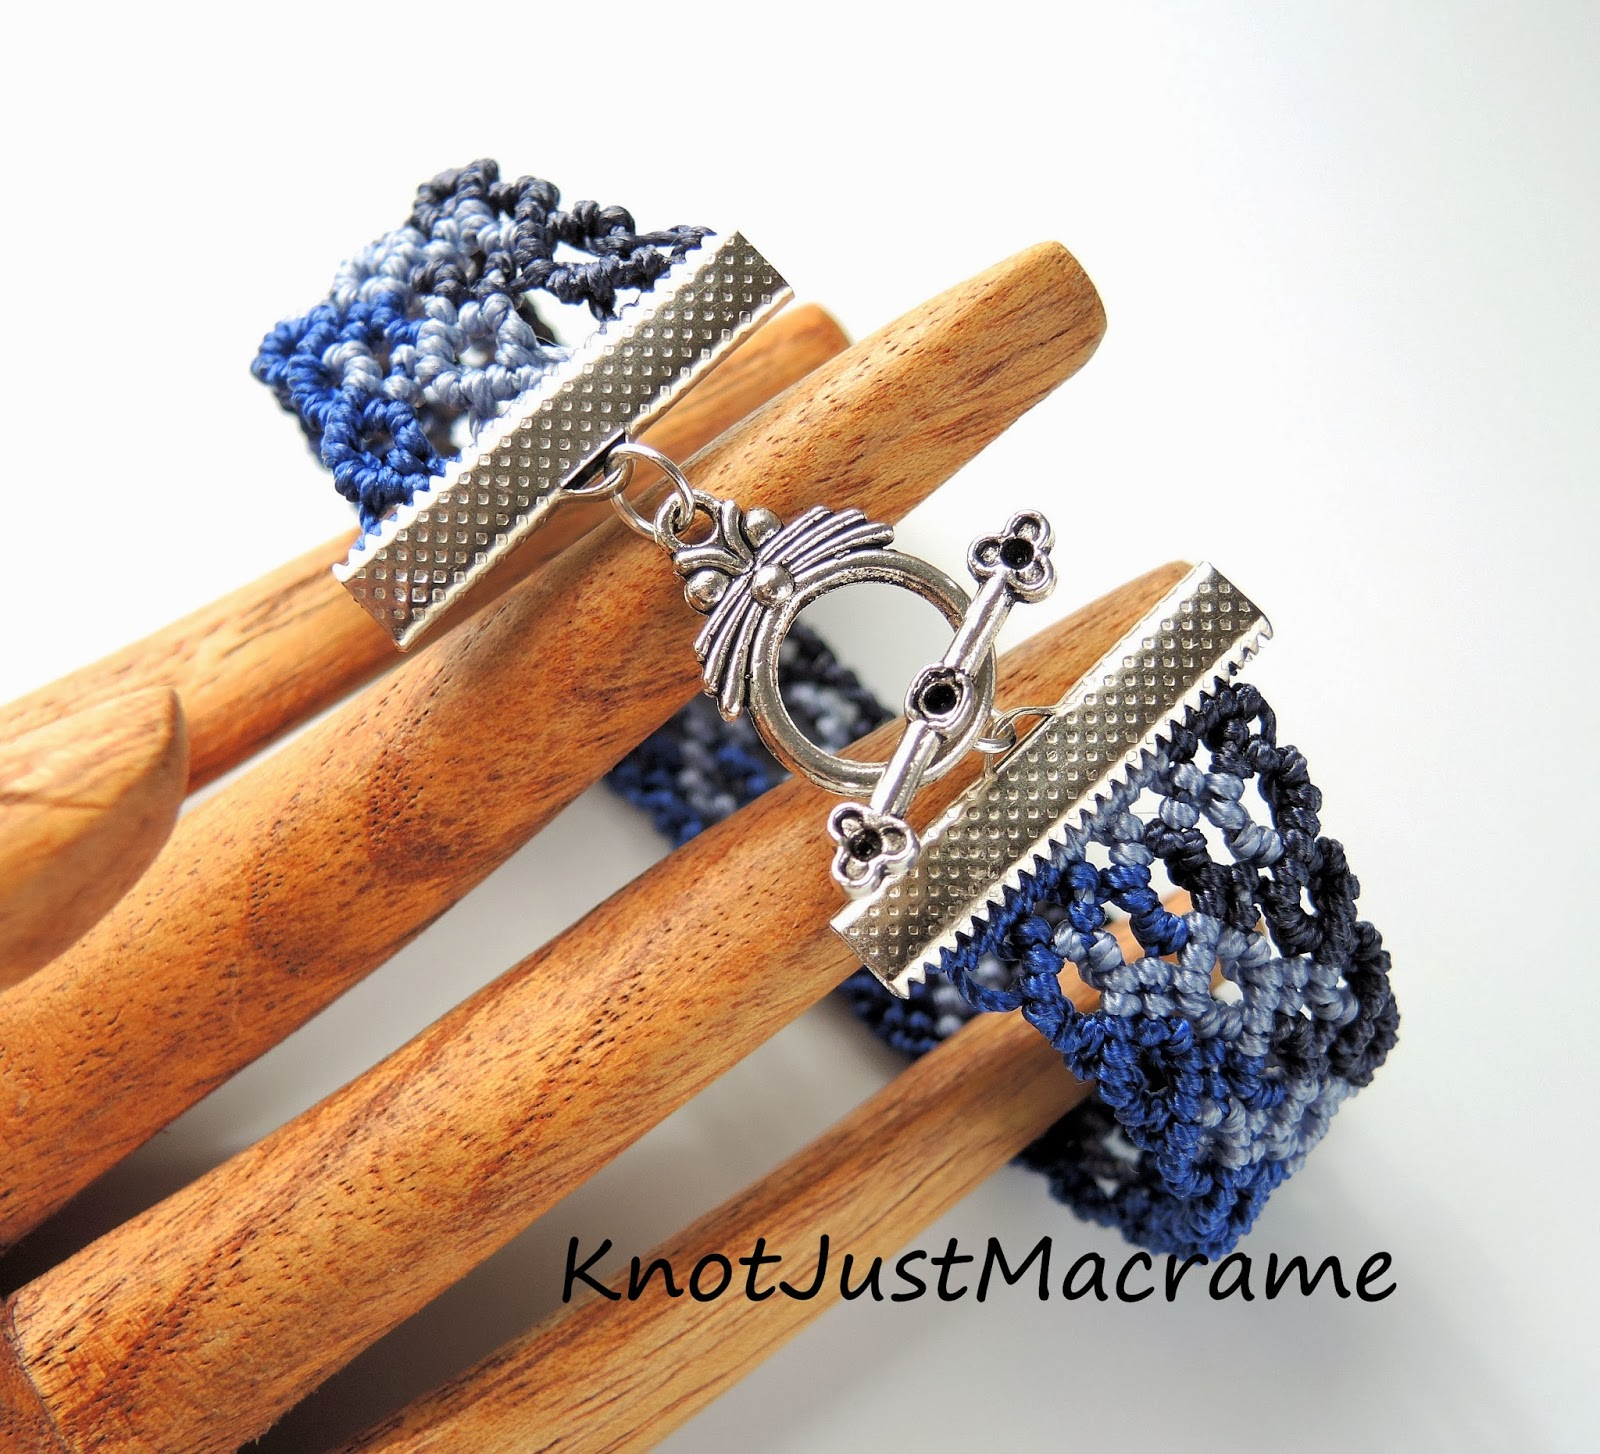 Curves Micro macrame bracelet pattern by Knot Just Macrame